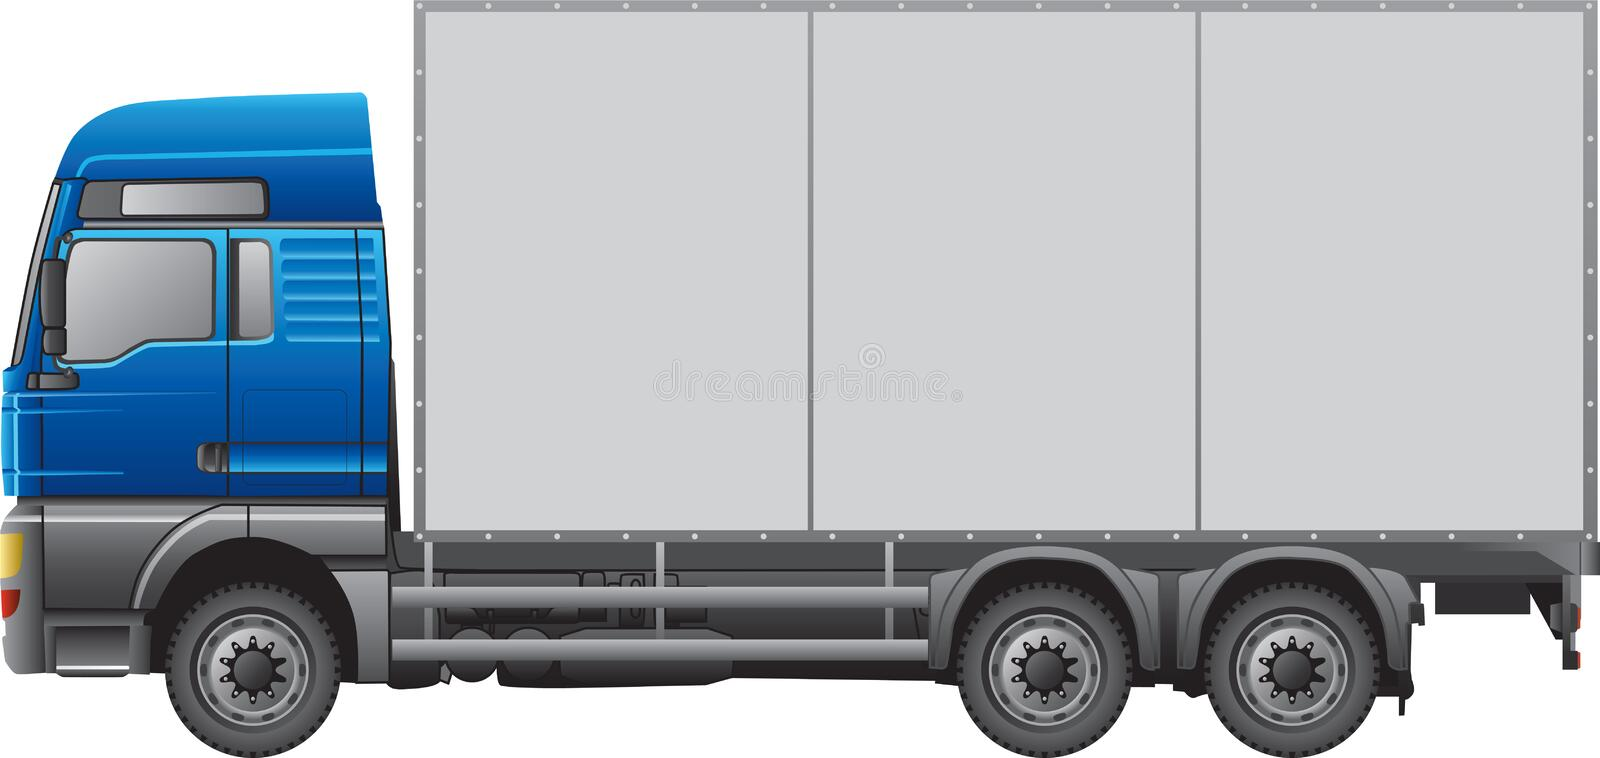 Truck. Semi-trailer truck isolated on white royalty free illustration